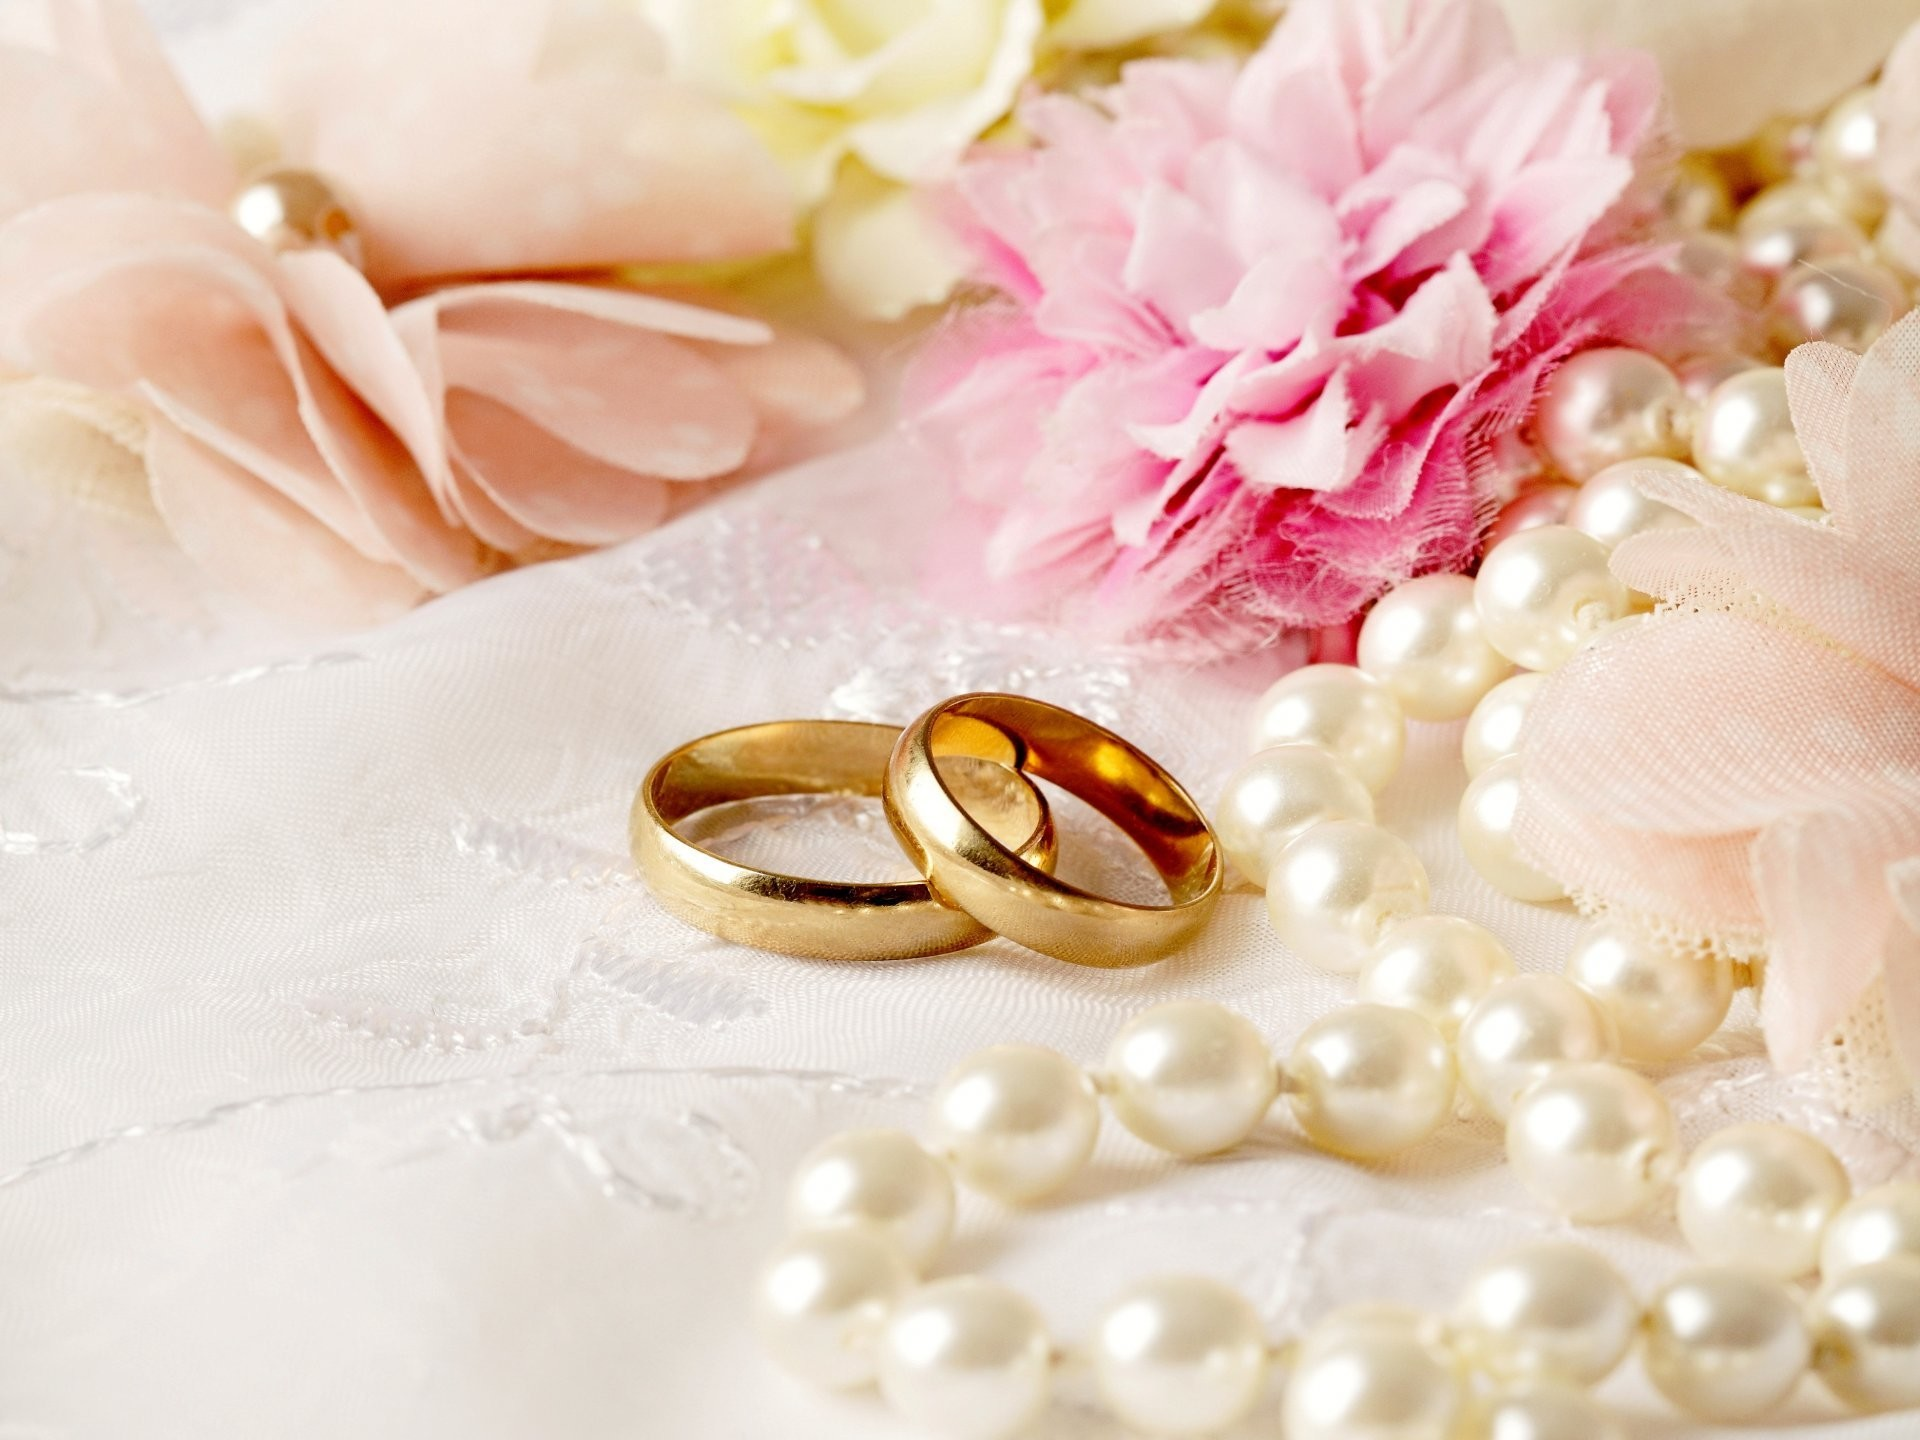 Hd Wedding Backgrounds 77 Images